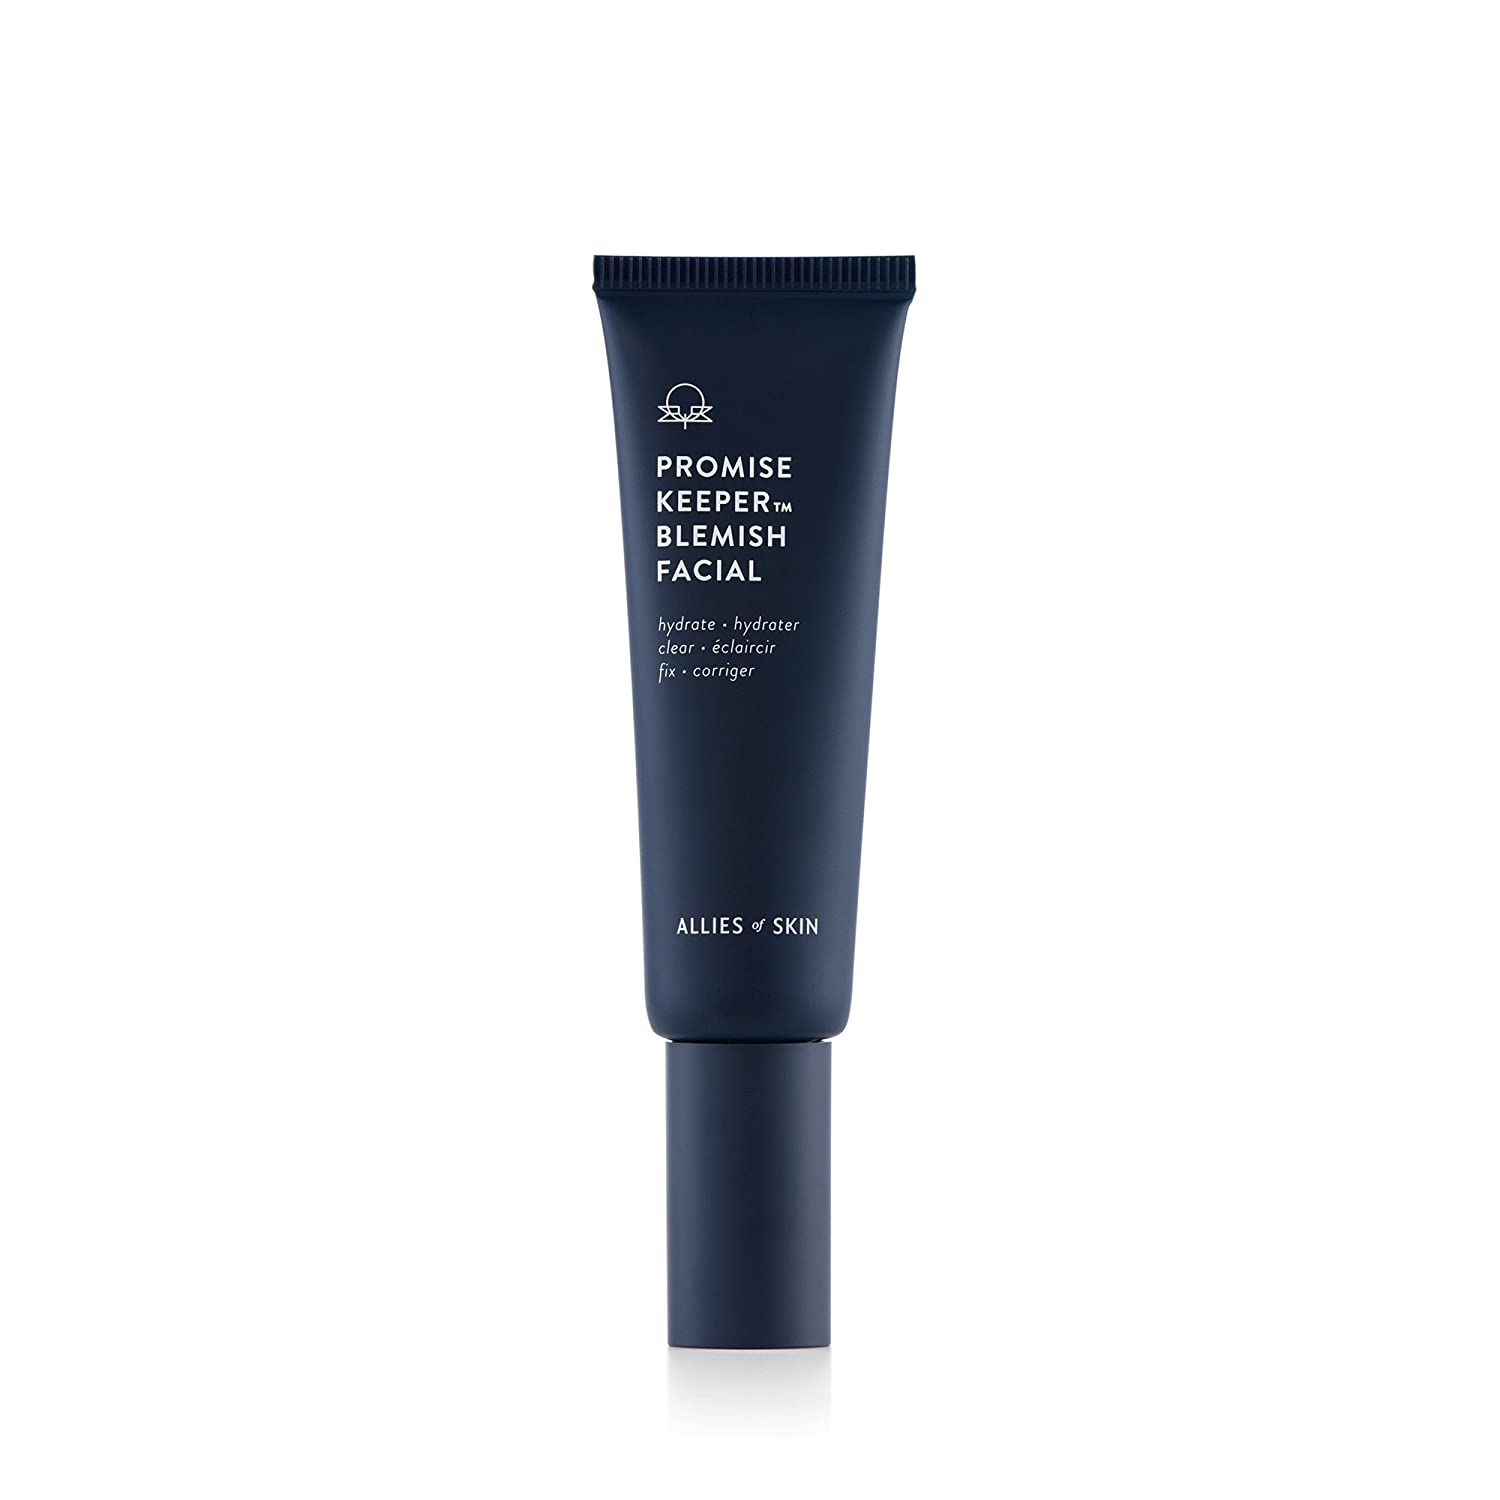 Allies of Skin Promise Keeper Blemish Facial, 50 ml